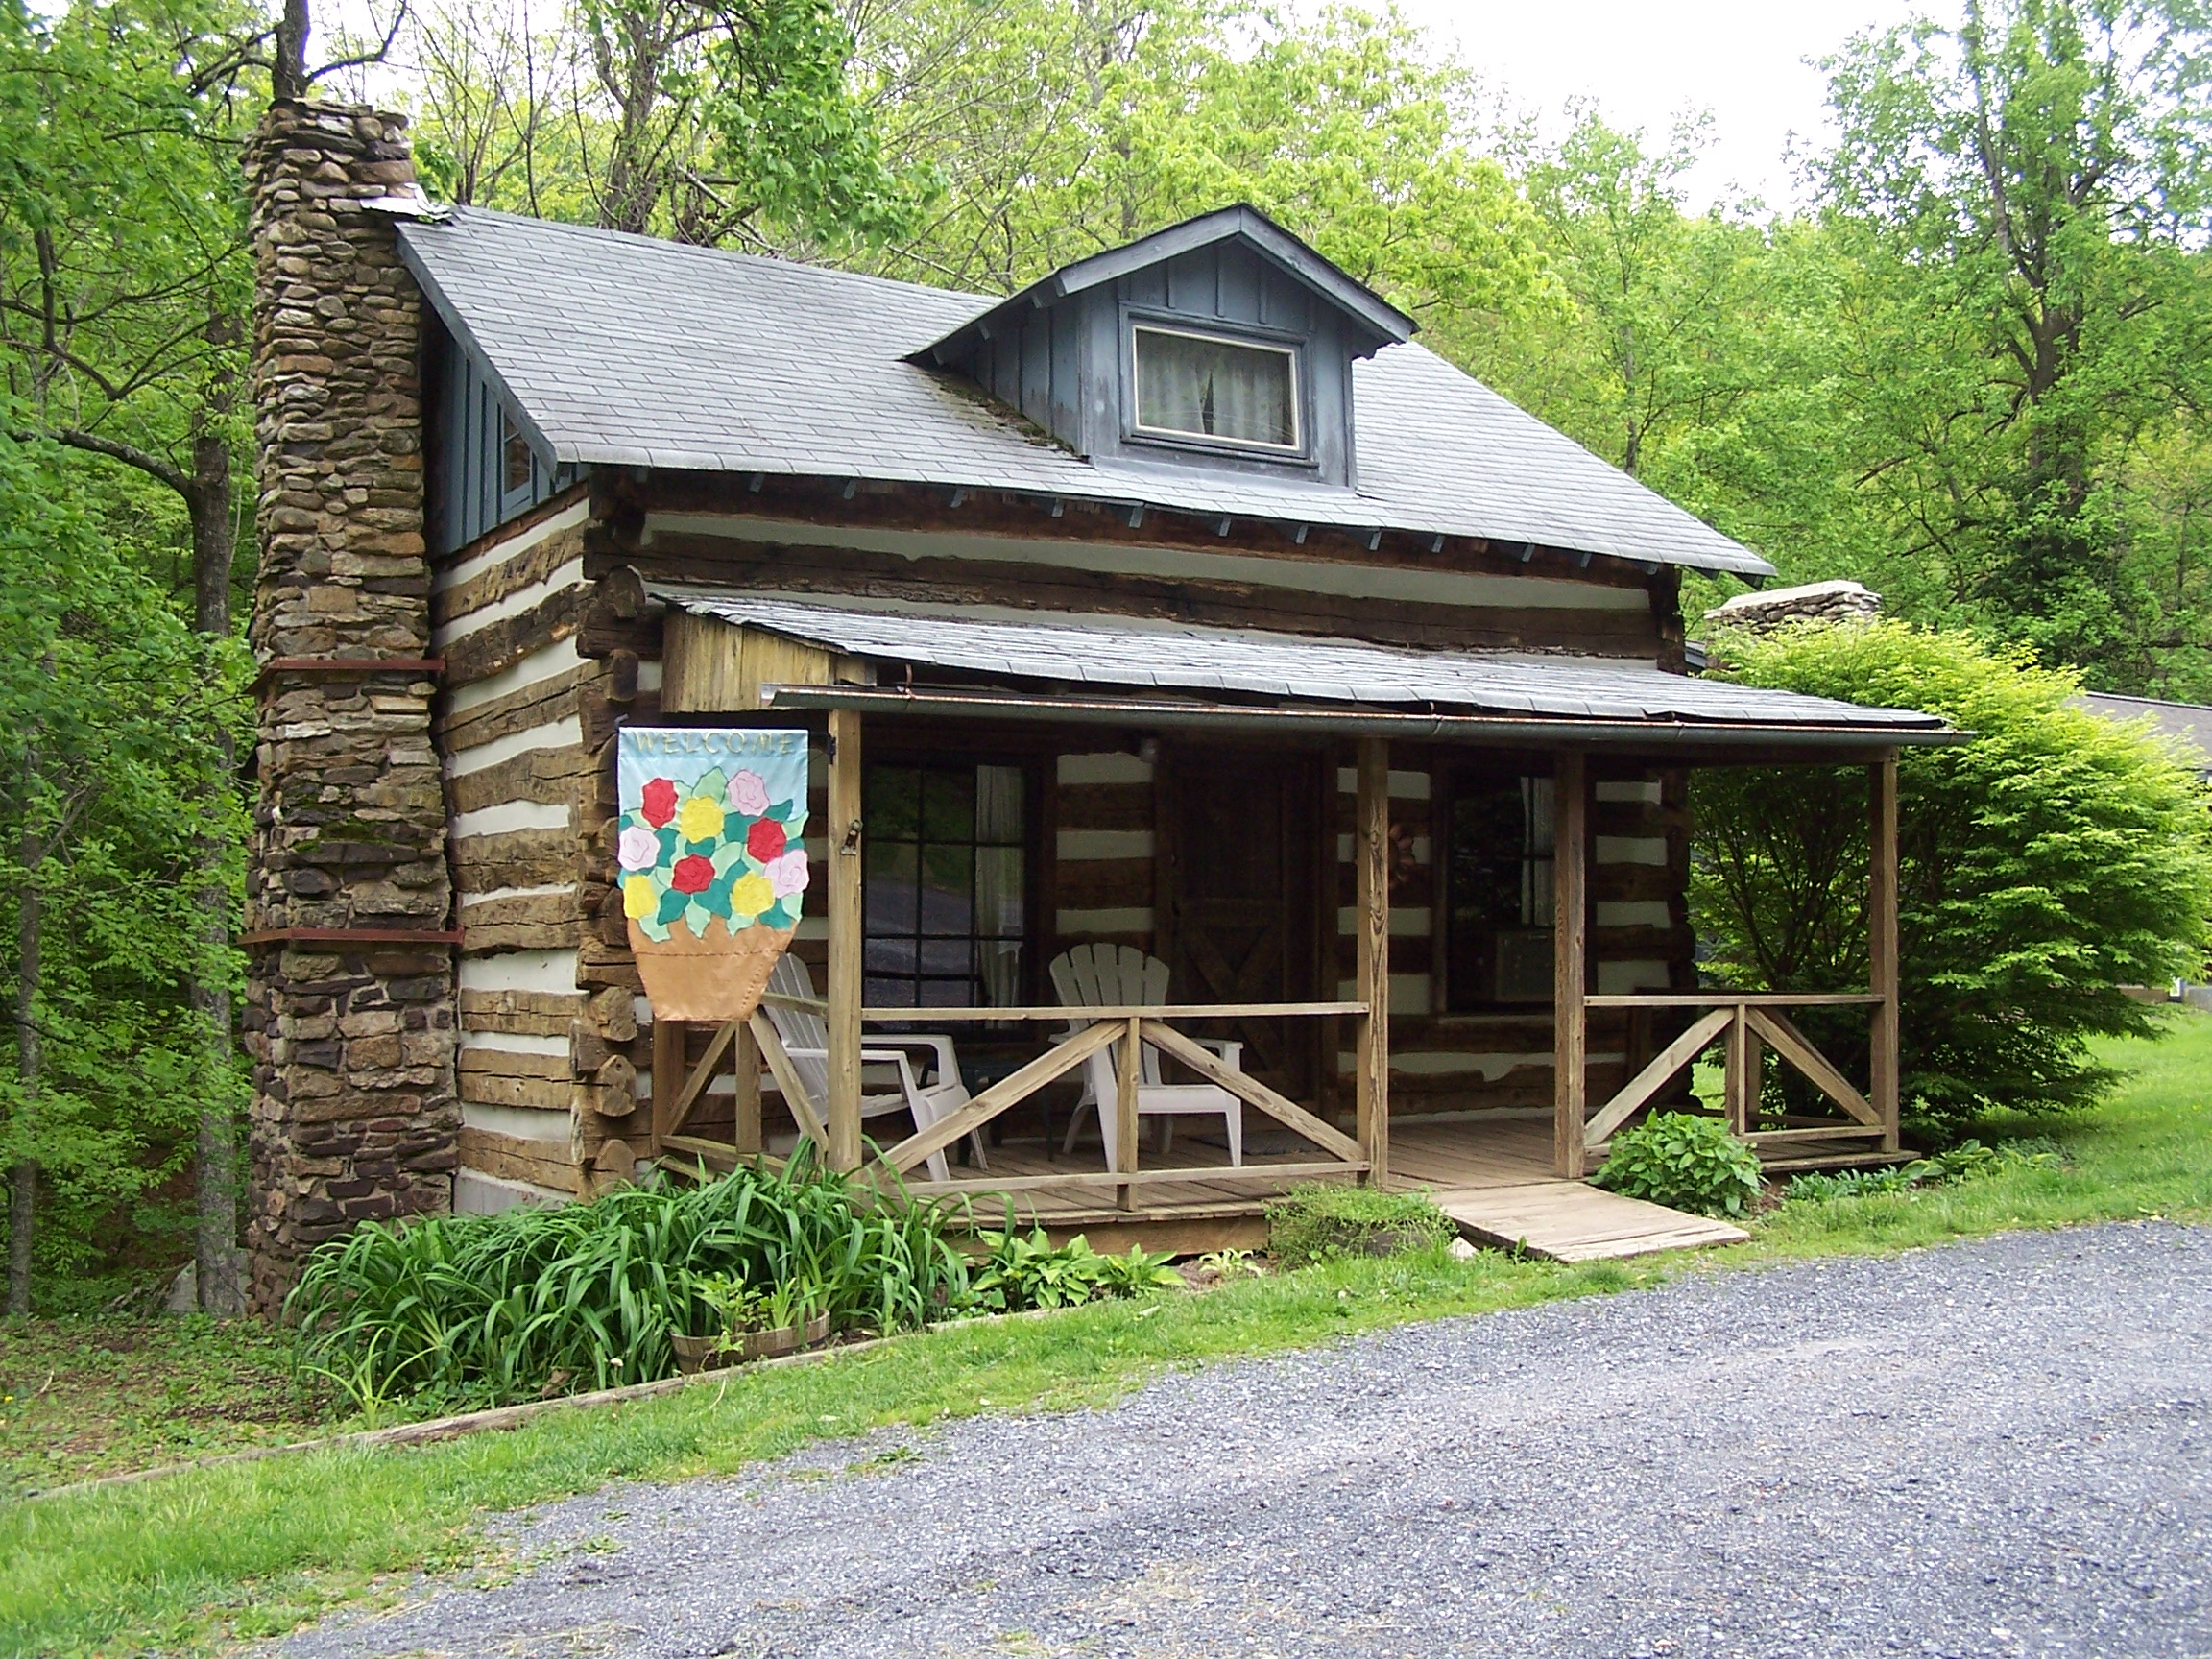 Hurricane irene causes flood of phone calls to cabin for Log cabins in shenandoah valley